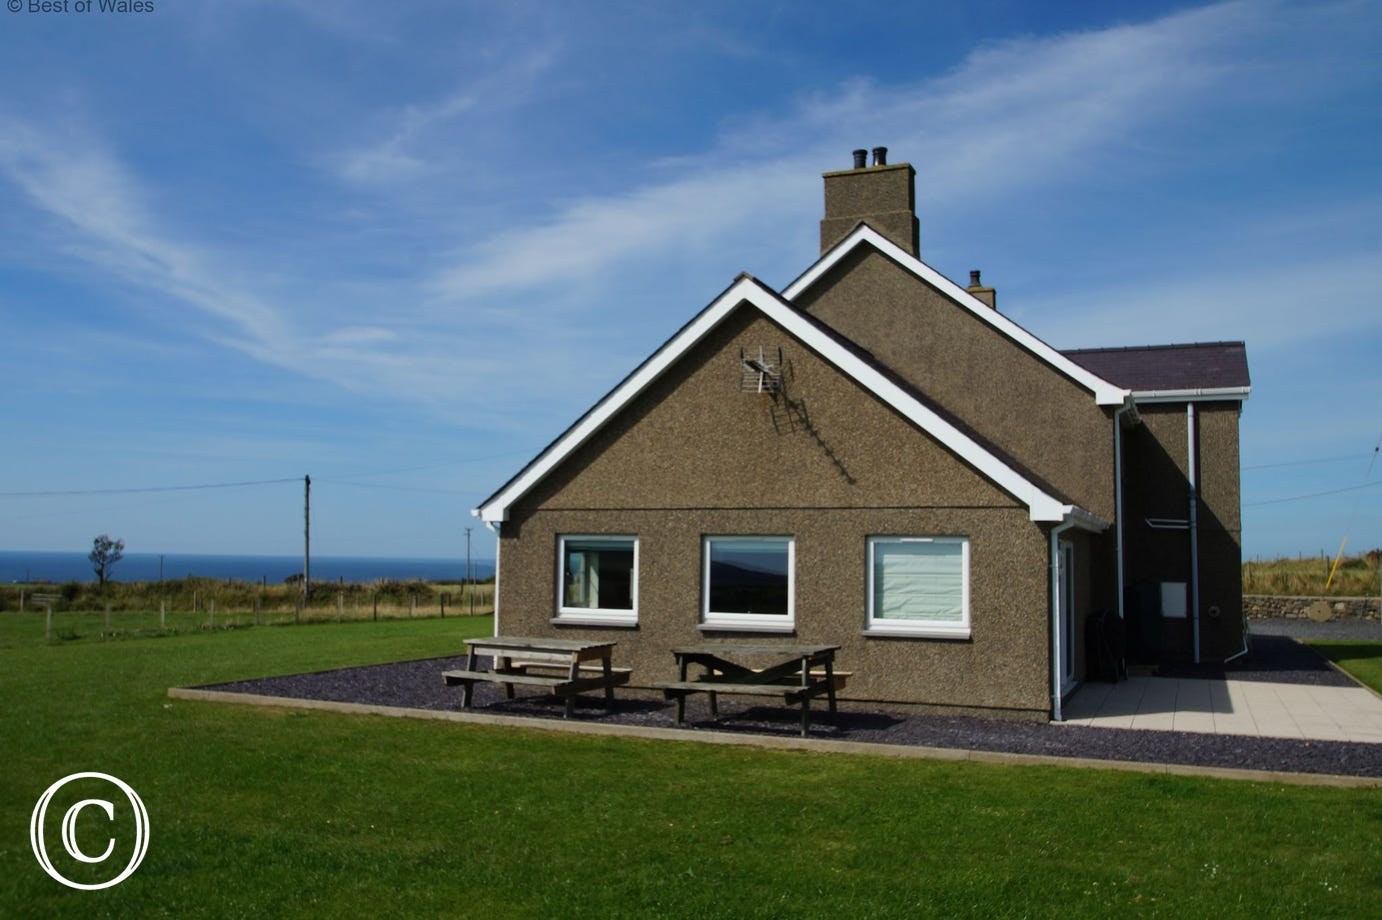 Holiday accommodation with sea views and miles of beautiful coutryside